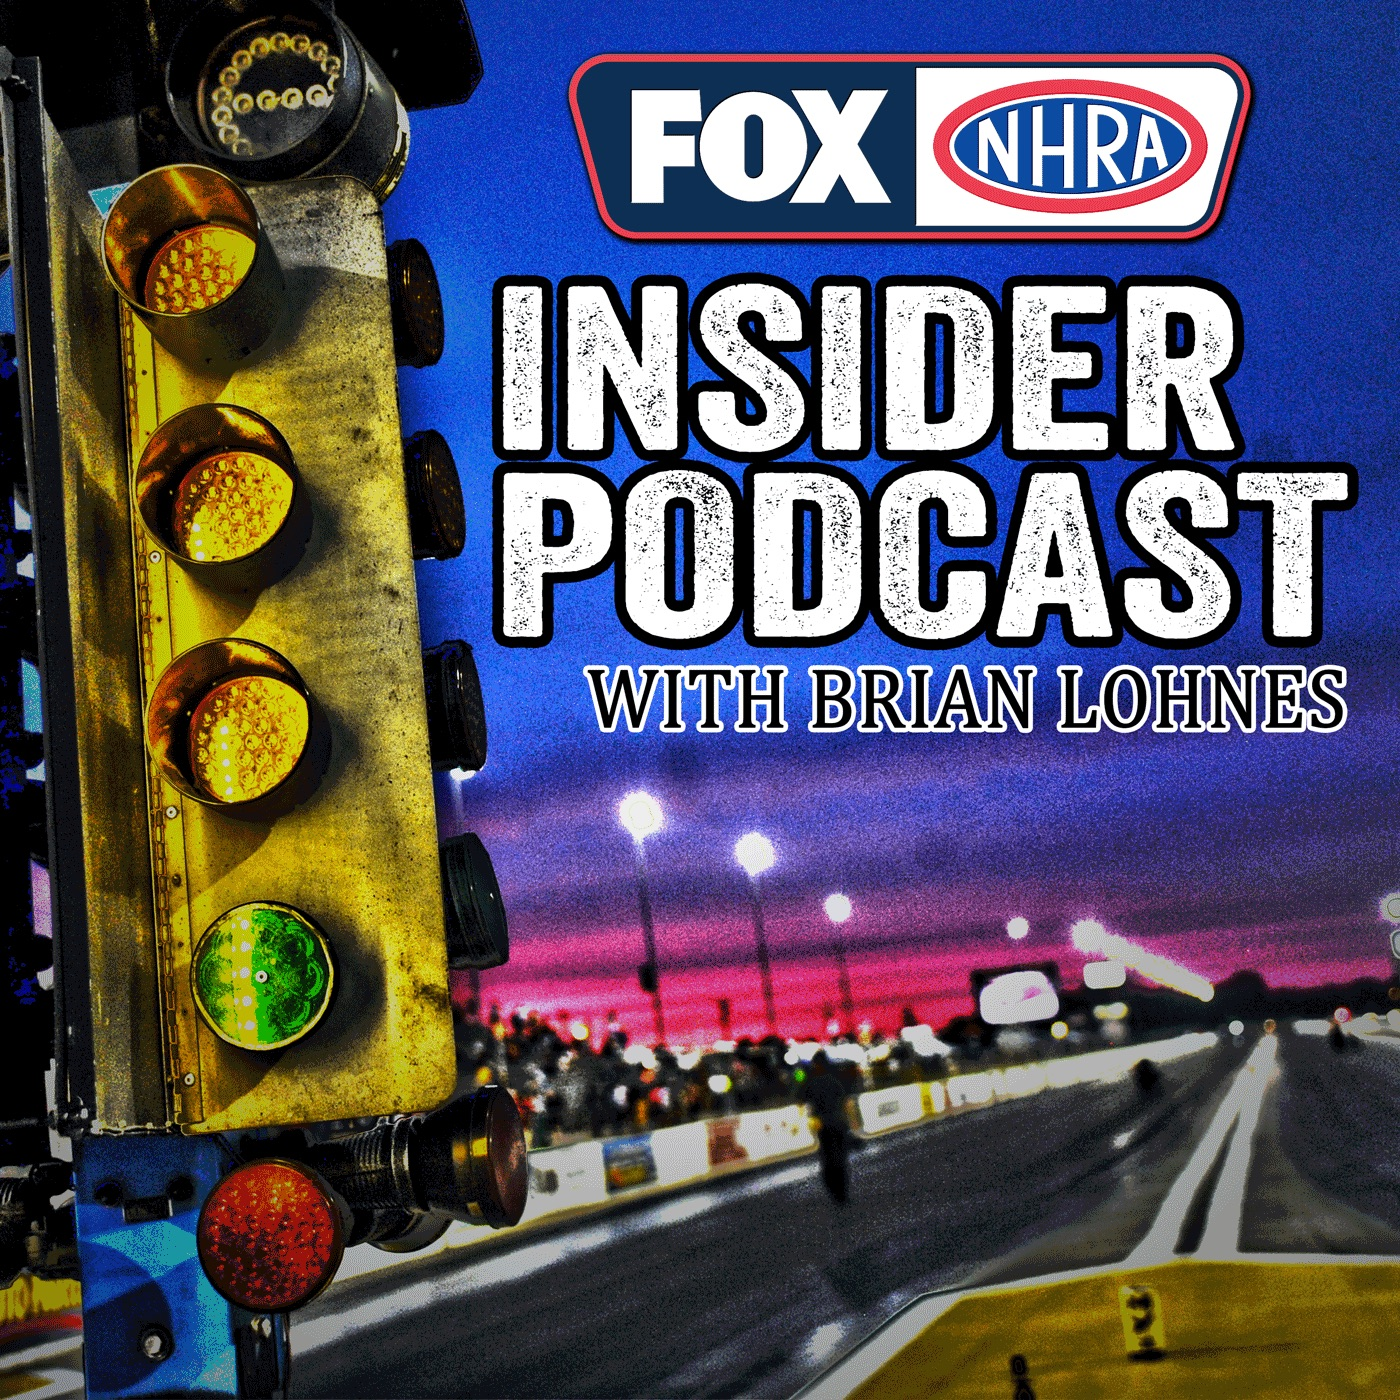 NHRA Insider Podcast: Two New Episodes Uploaded – Radial Racing and Profiles In Grit and Guts